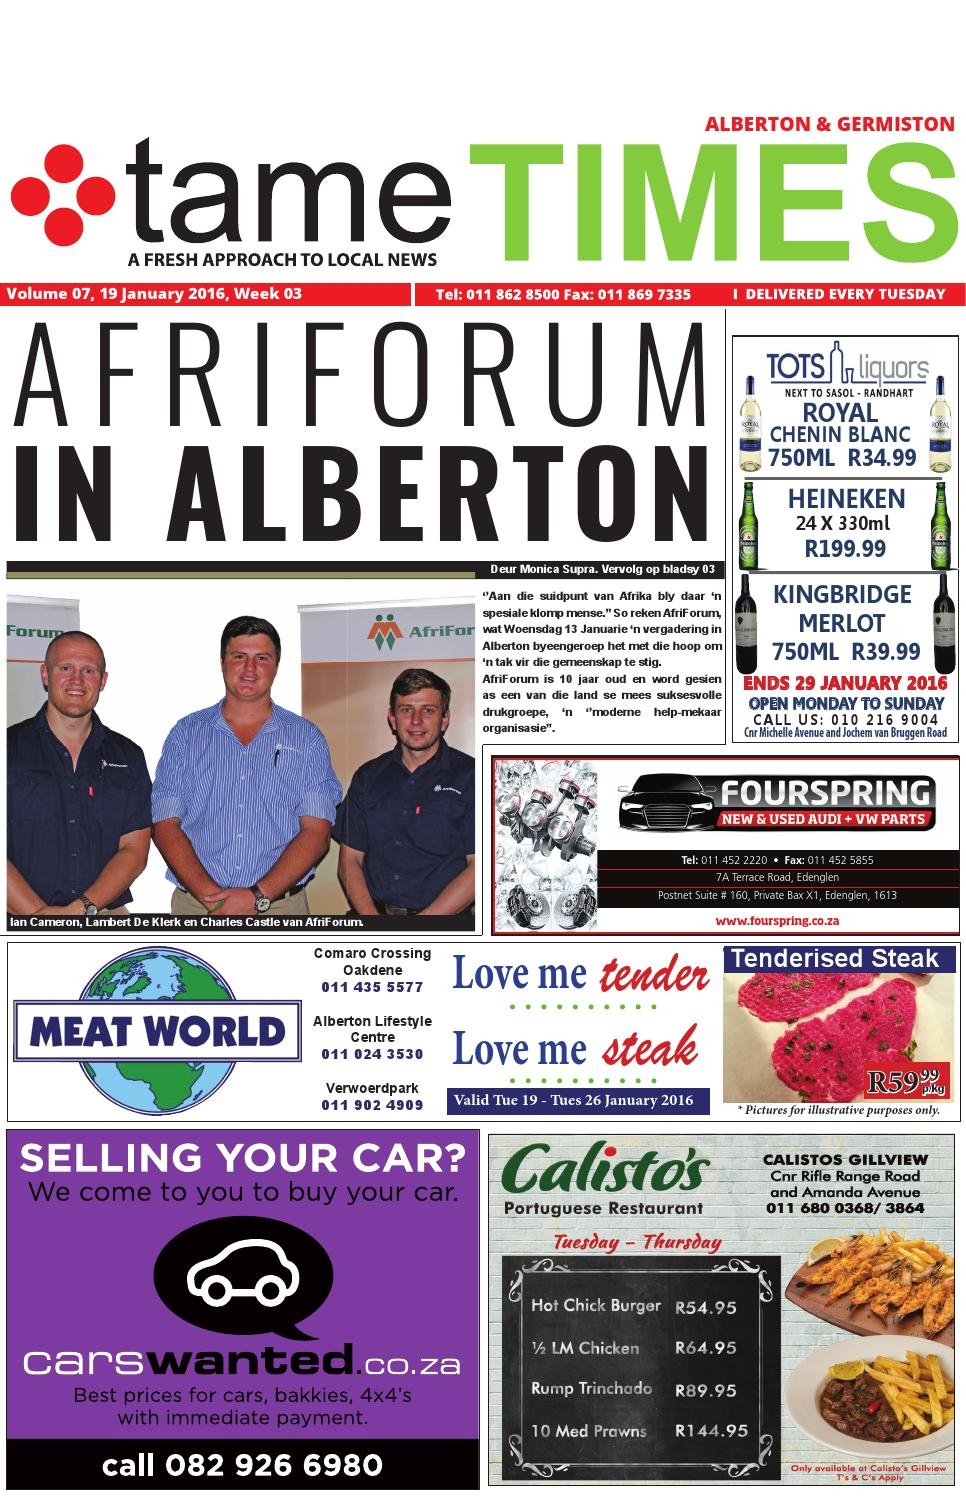 tame TIMES Alberton 19 January 2016 by tameTIMES - issuu